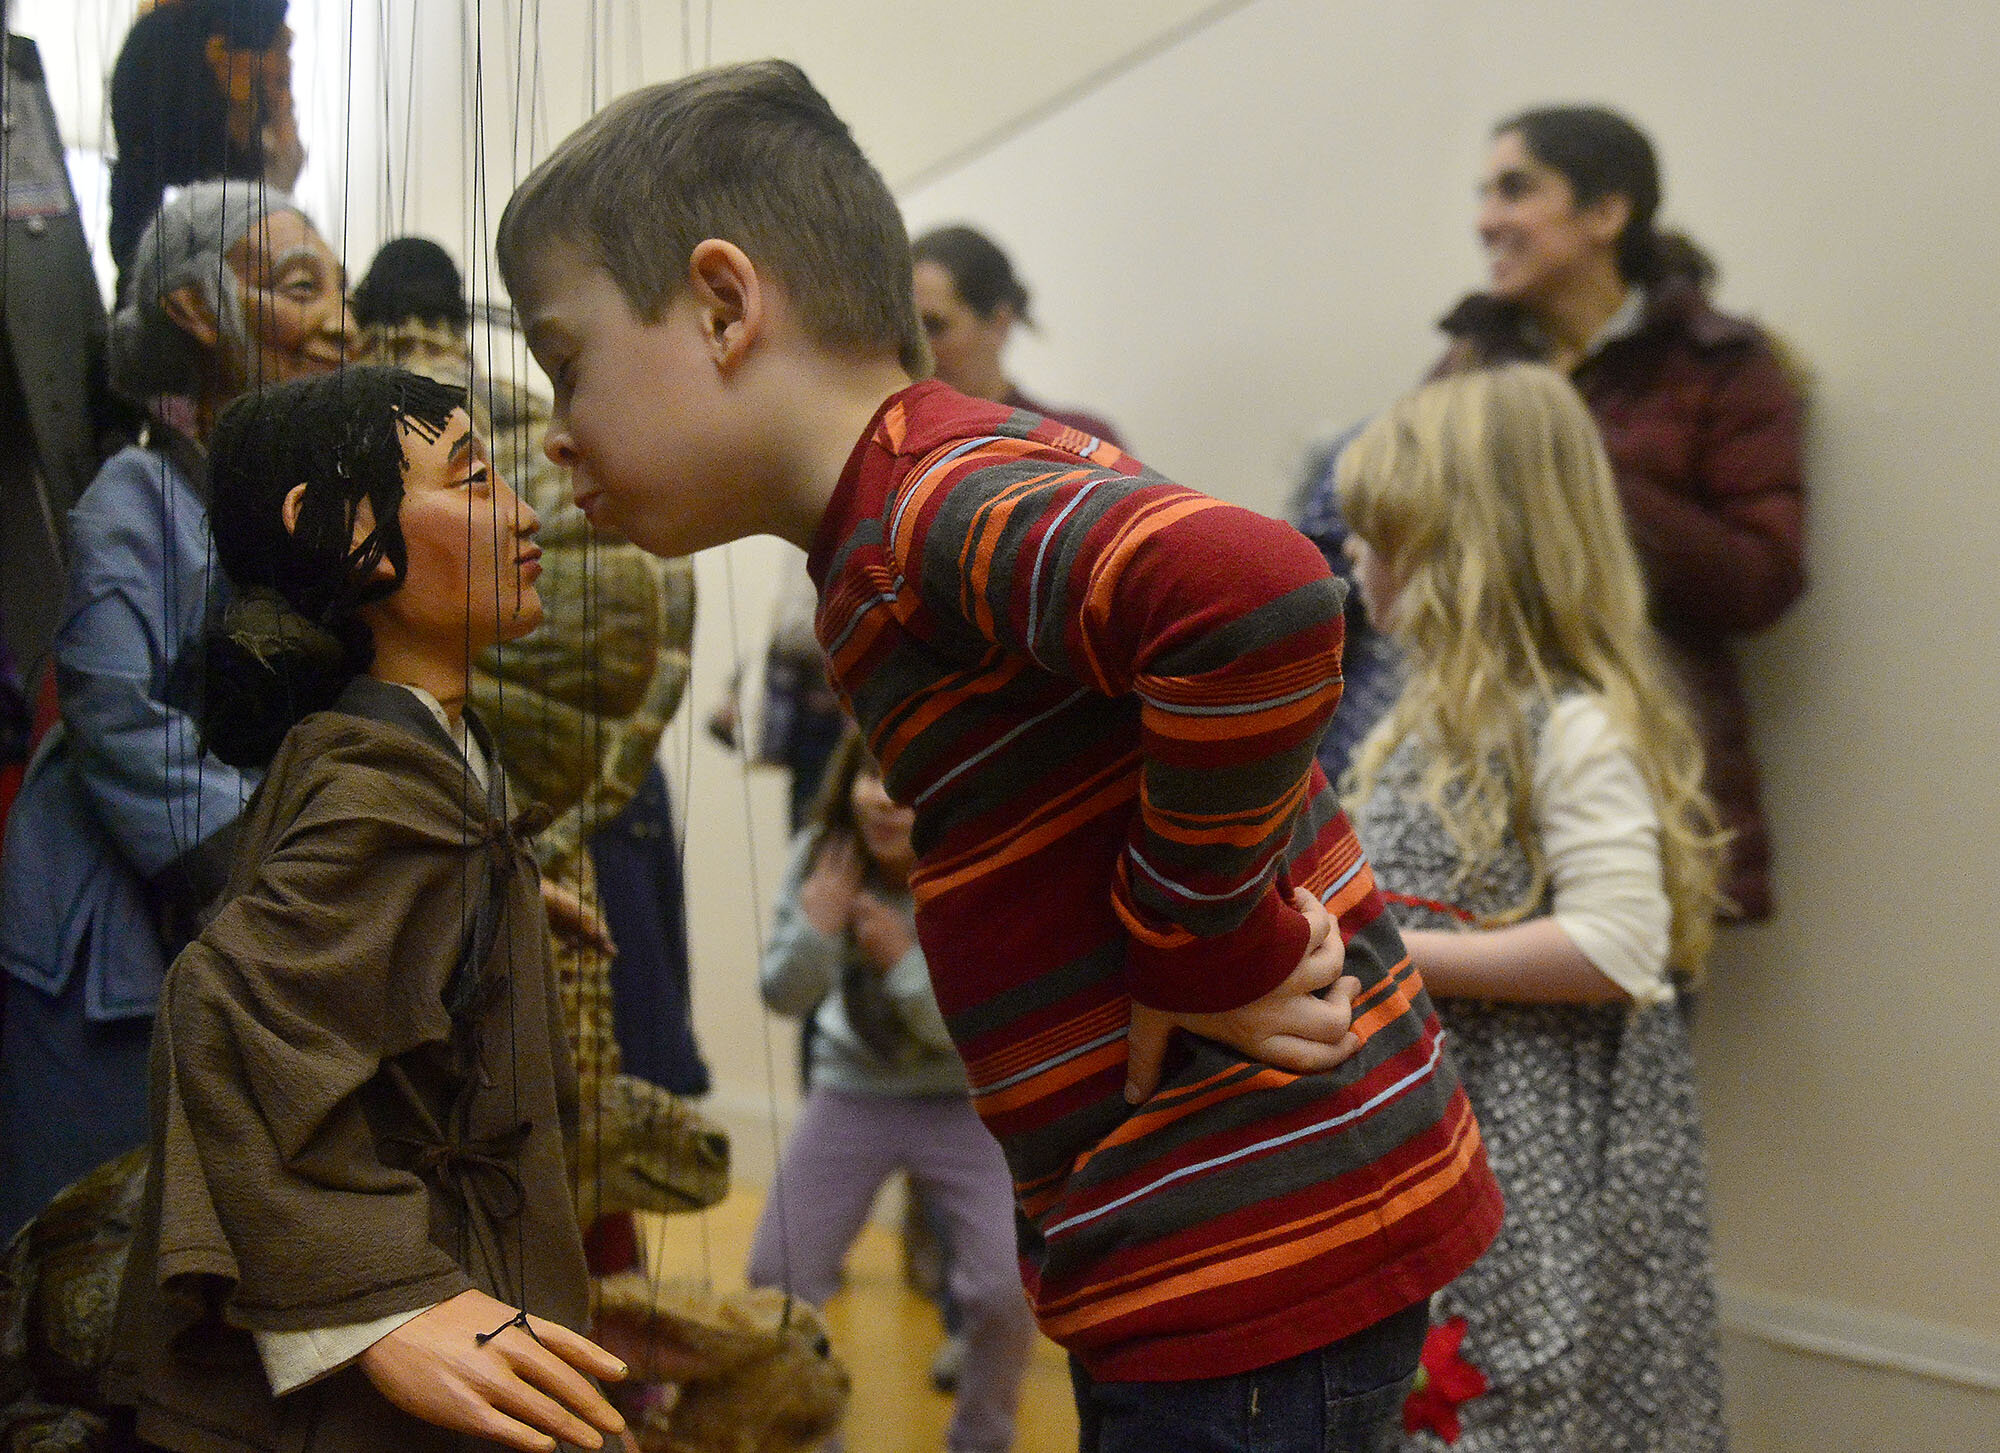 Oscar Stallard, 5 of New London, leans in to pretend kiss a puppet while walking backstage after the Tanglewood Marionette's presentation of The Dragon King on Sunday, February 25, 2018, at the East Lyme Community Center. The show was presented by the East Lyme Puppetry Project and was a fundraiser for the food pantry at Care & Share of East Lyme. (The Day)